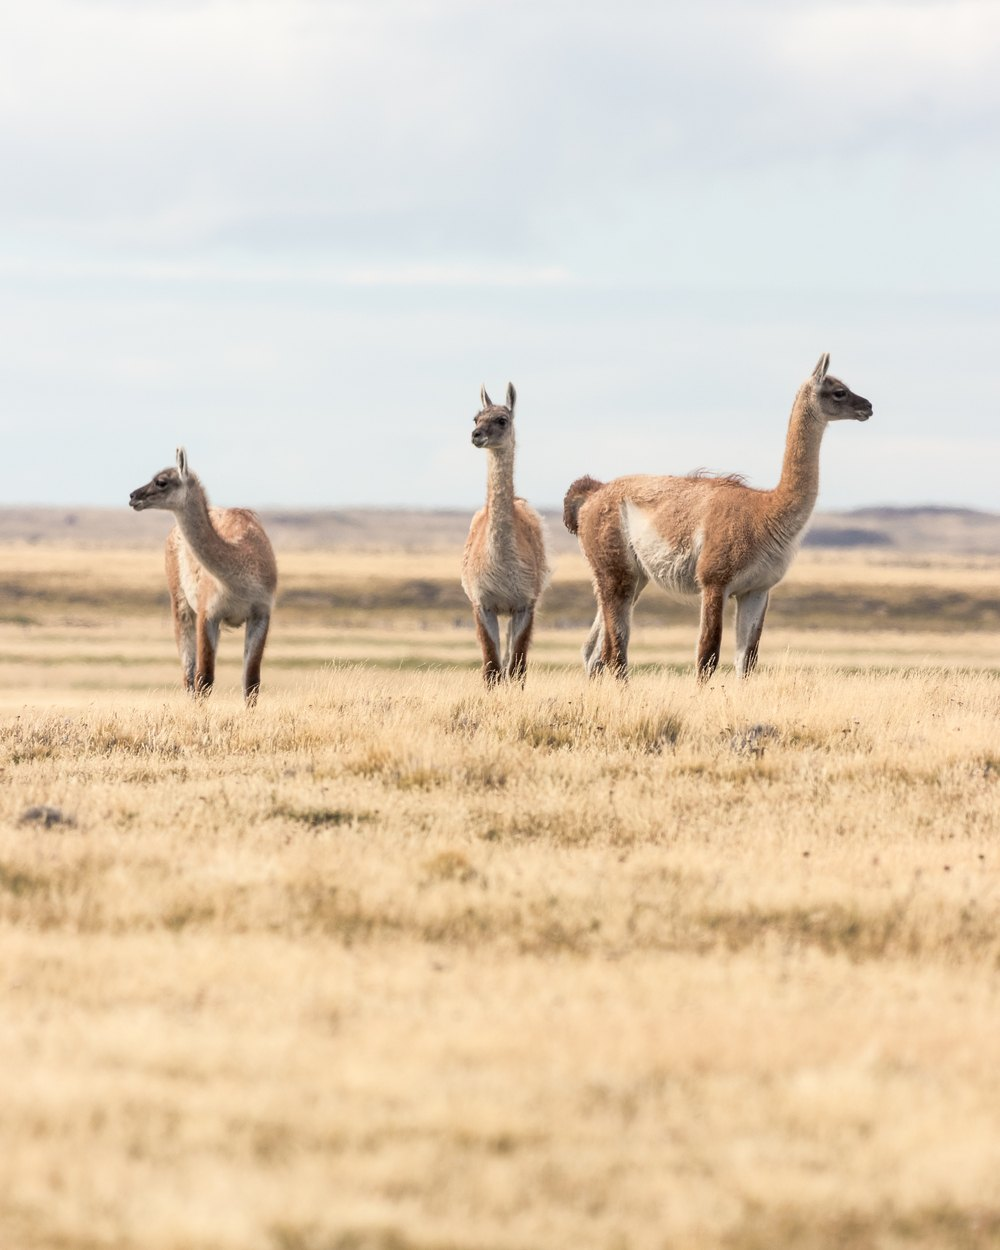 The chilean side of Tierra del Fuego is a home to many guanacos.